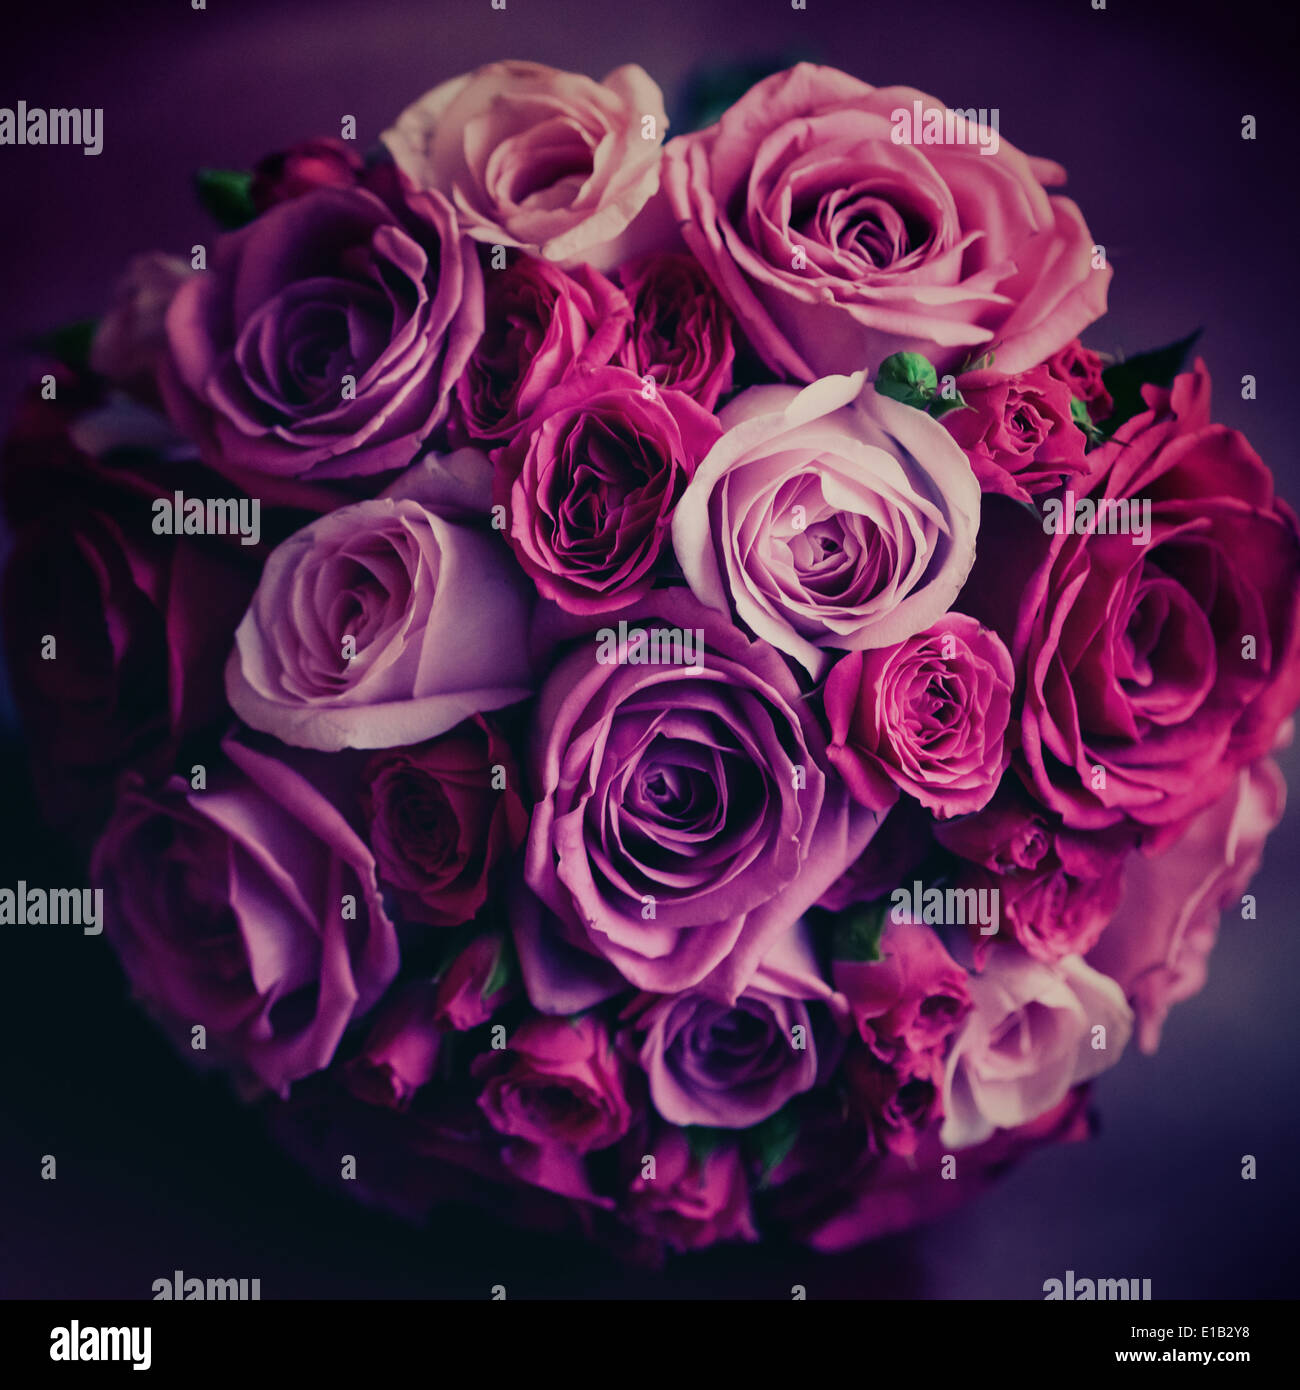 Wedding Flowers Pink And Red Roses Selective Focus Vintage Colors